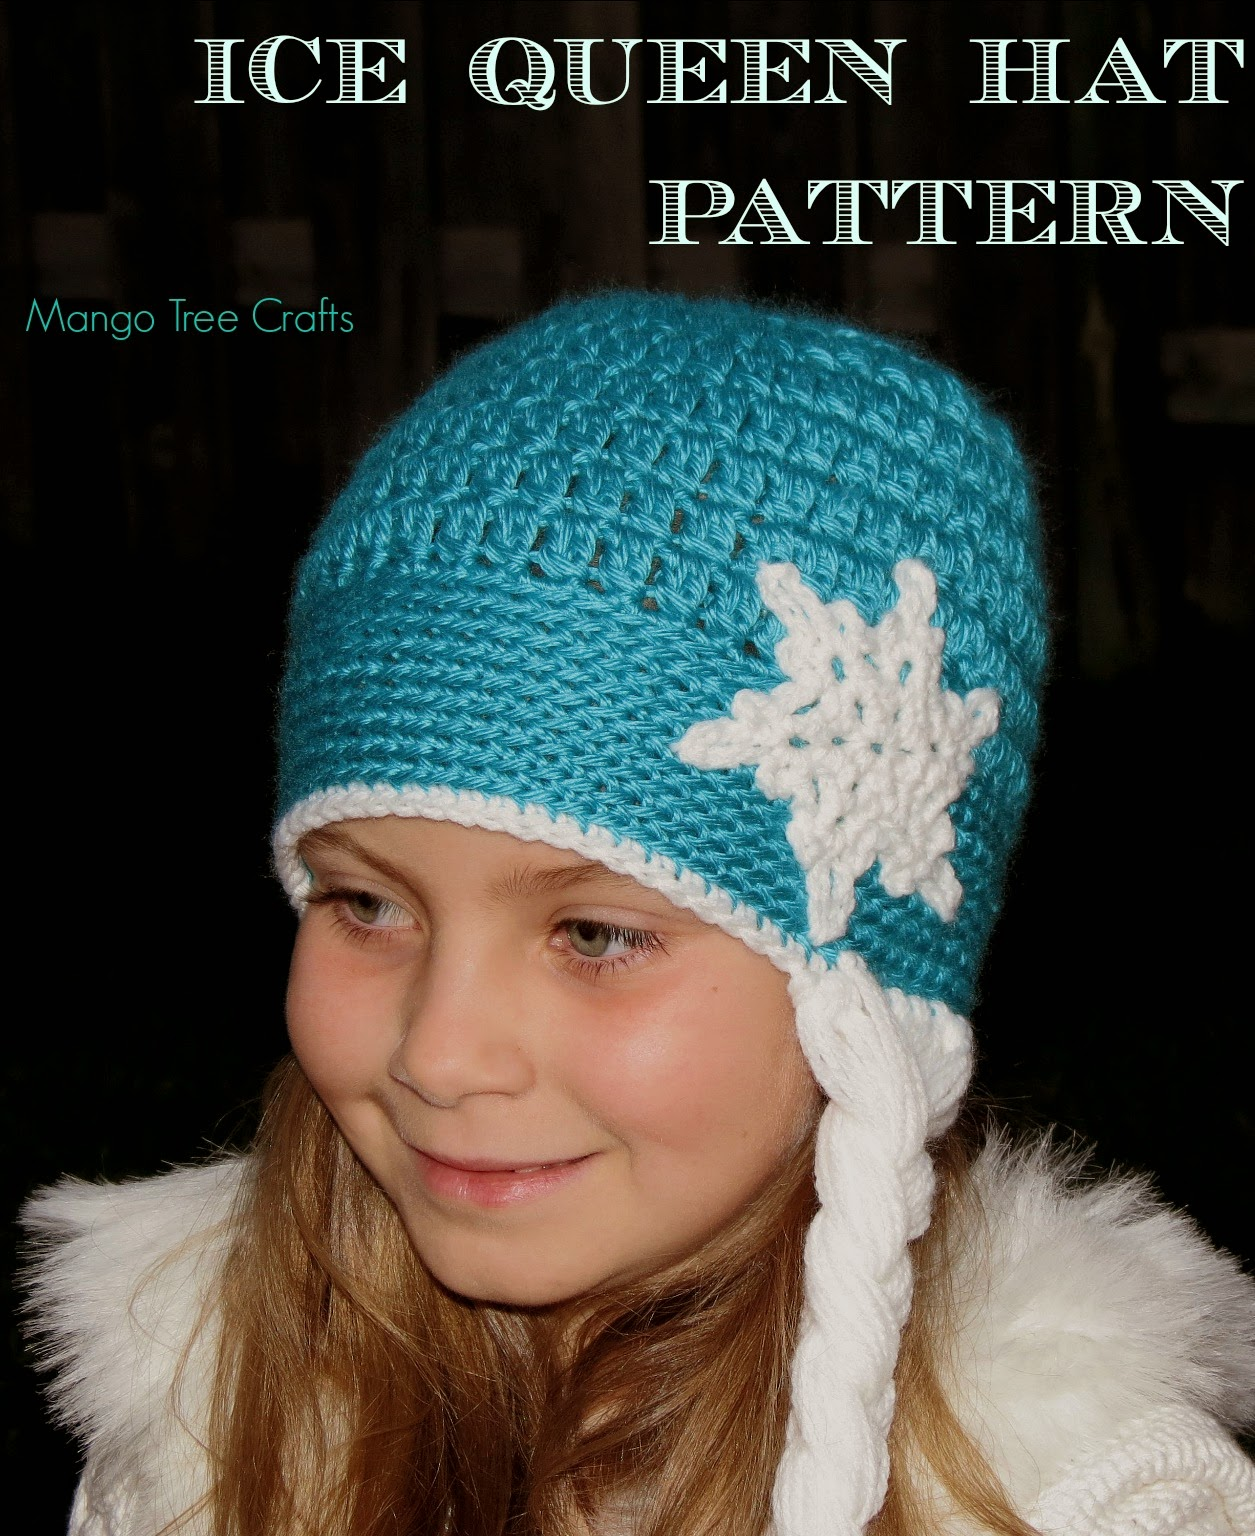 Free Crochet Pattern Frozen Elsa Hat : Mango Tree Crafts: Ice Queen Crochet Hat Pattern